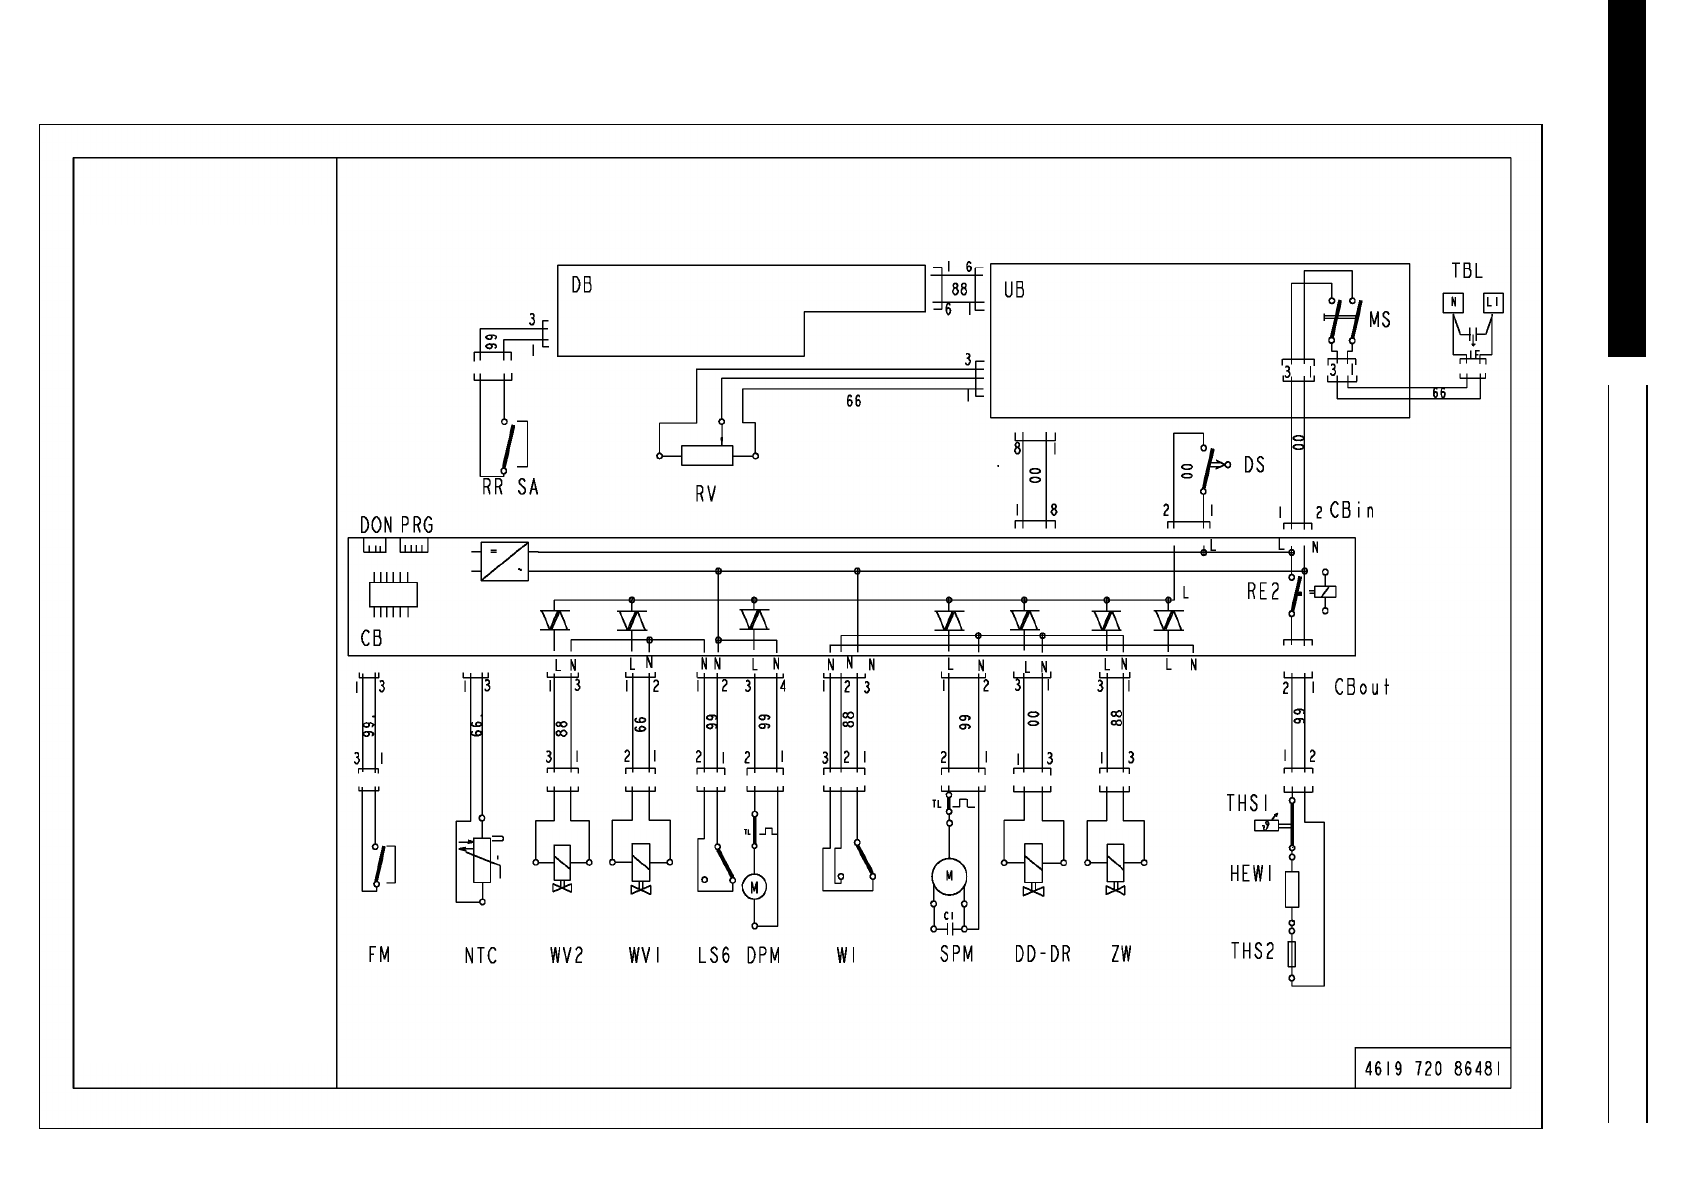 Mike Moz besides How Do I Power A Lcd Backlight Inverter Got From A Disasembled Lcd Screen additionally Pc Troubleshooting moreover Visio Online 88613 in addition John Deere Service Advisor AG 4 2012 Repair Manual. on laptop repair diagram